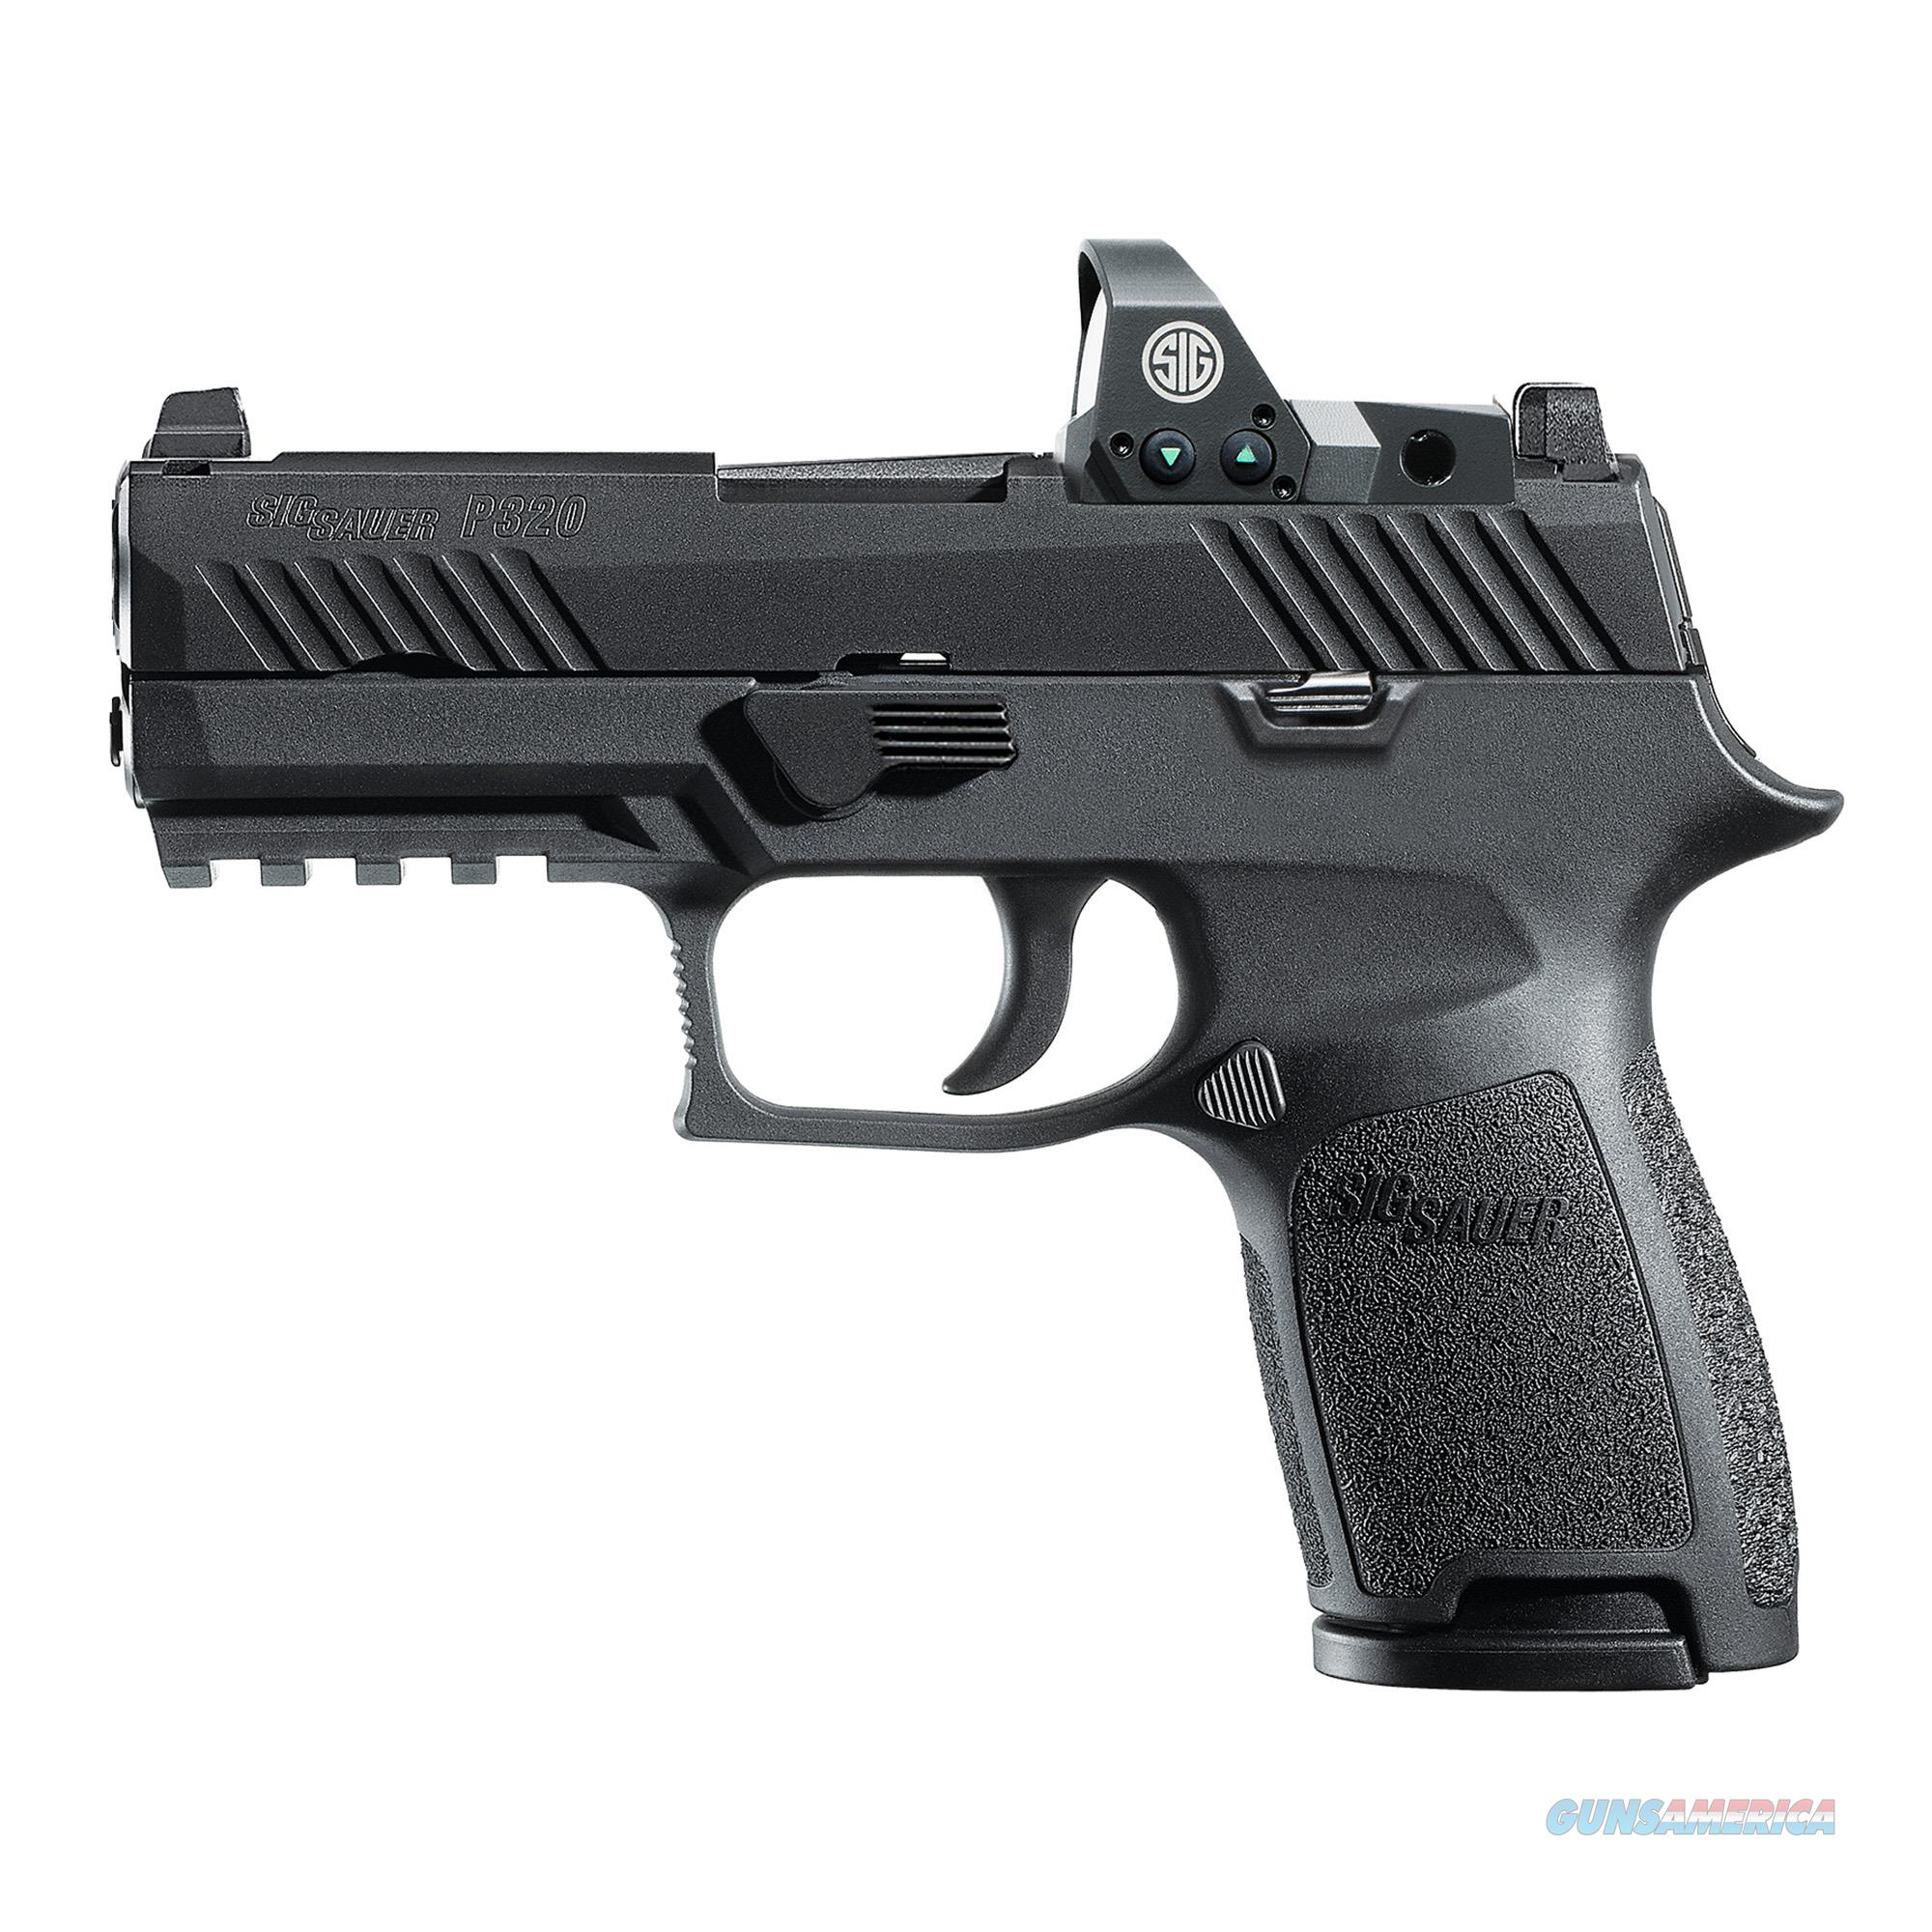 """Sig Sauer P320 Compact RX 9mm 3.9"""" 15+1 - New in Case!  Guns > Pistols > Sig - Sauer/Sigarms Pistols > P320"""